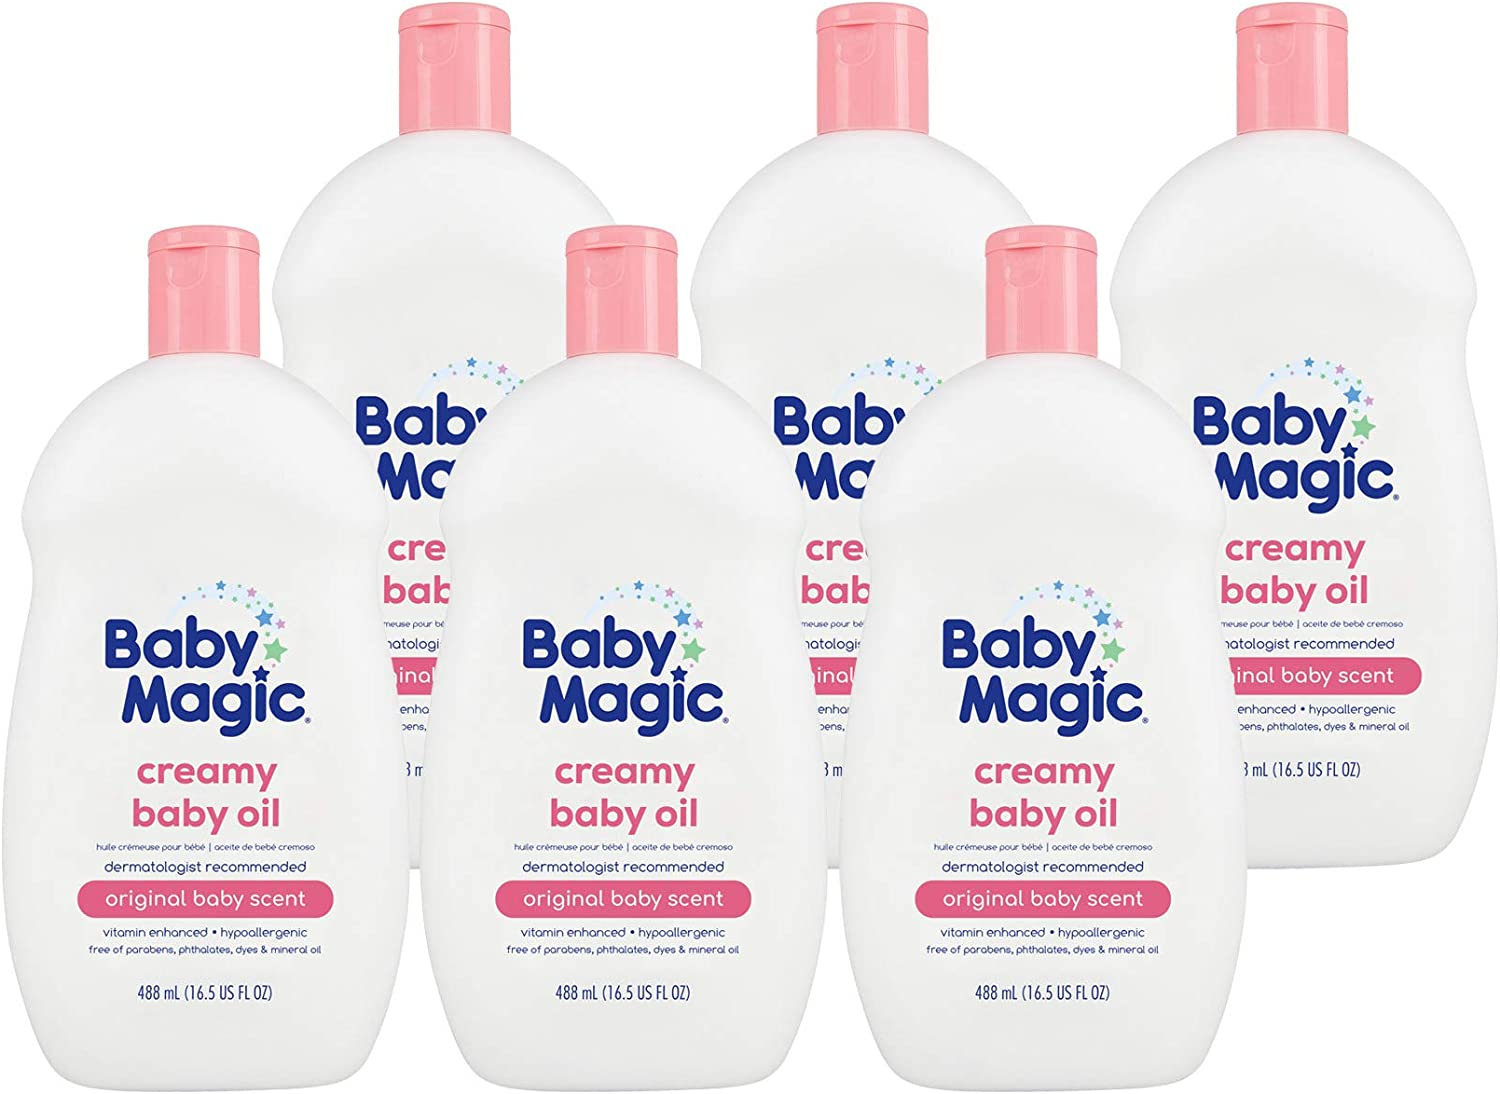 Baby Magic Creamy Baby Oil | 16.5oz (Pack of 6) | Coconut Oil & Camelia Oil | Free of Parabens, Phthalates, Sulfates and Dyes